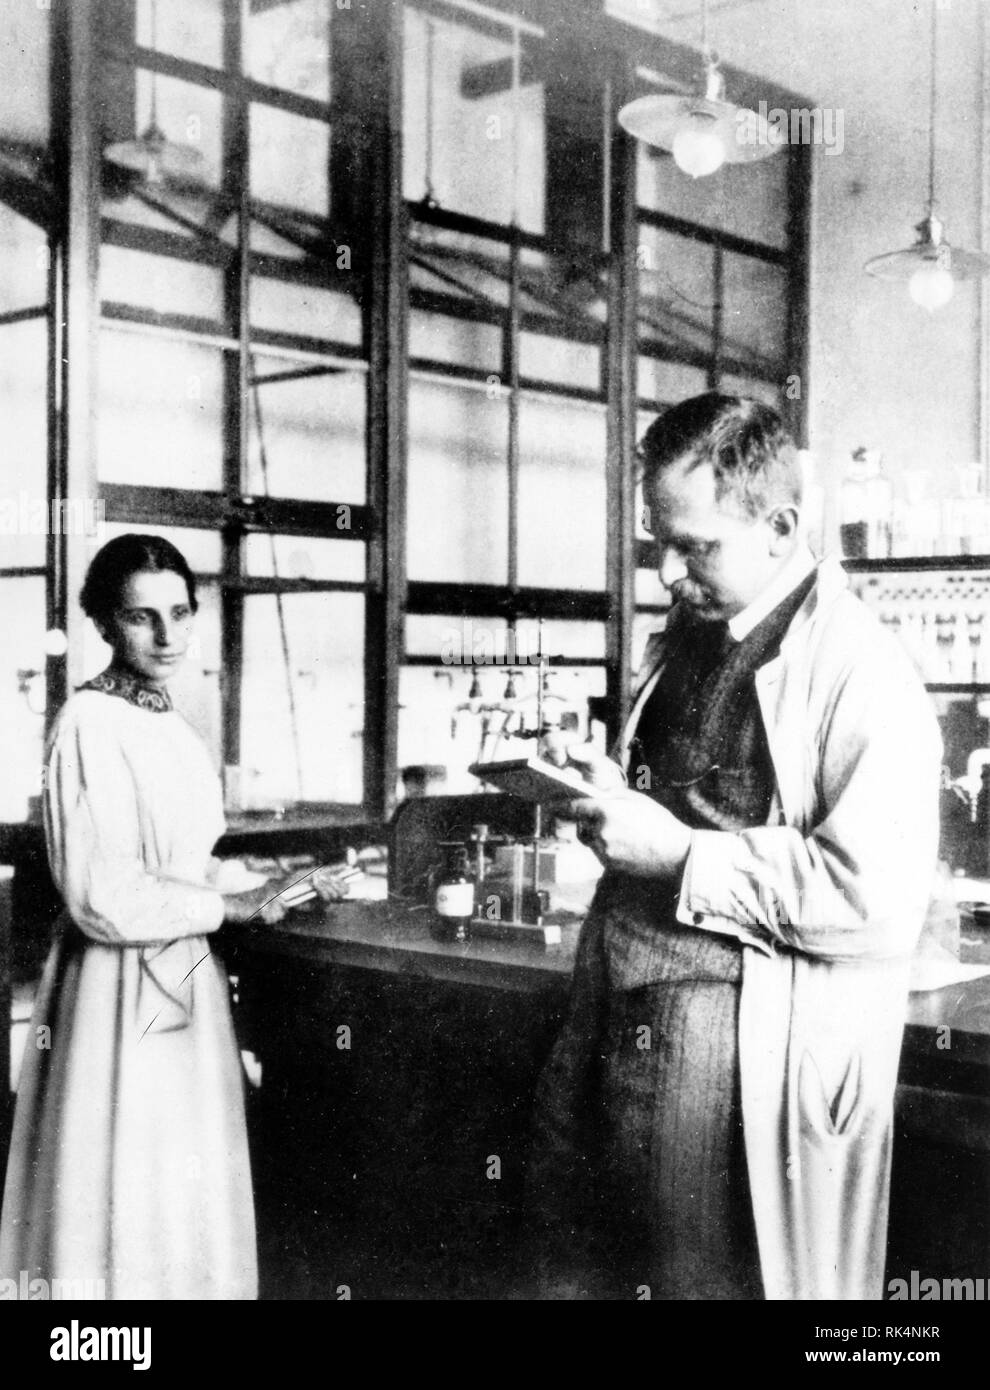 LISE MEITNER (1878-1968) Austrian-Swedish physicist with Otto Hahn about 1935 at Kaiser Wilhelm Institute for Chemistry in Berlin-Dahlem. Stock Photo